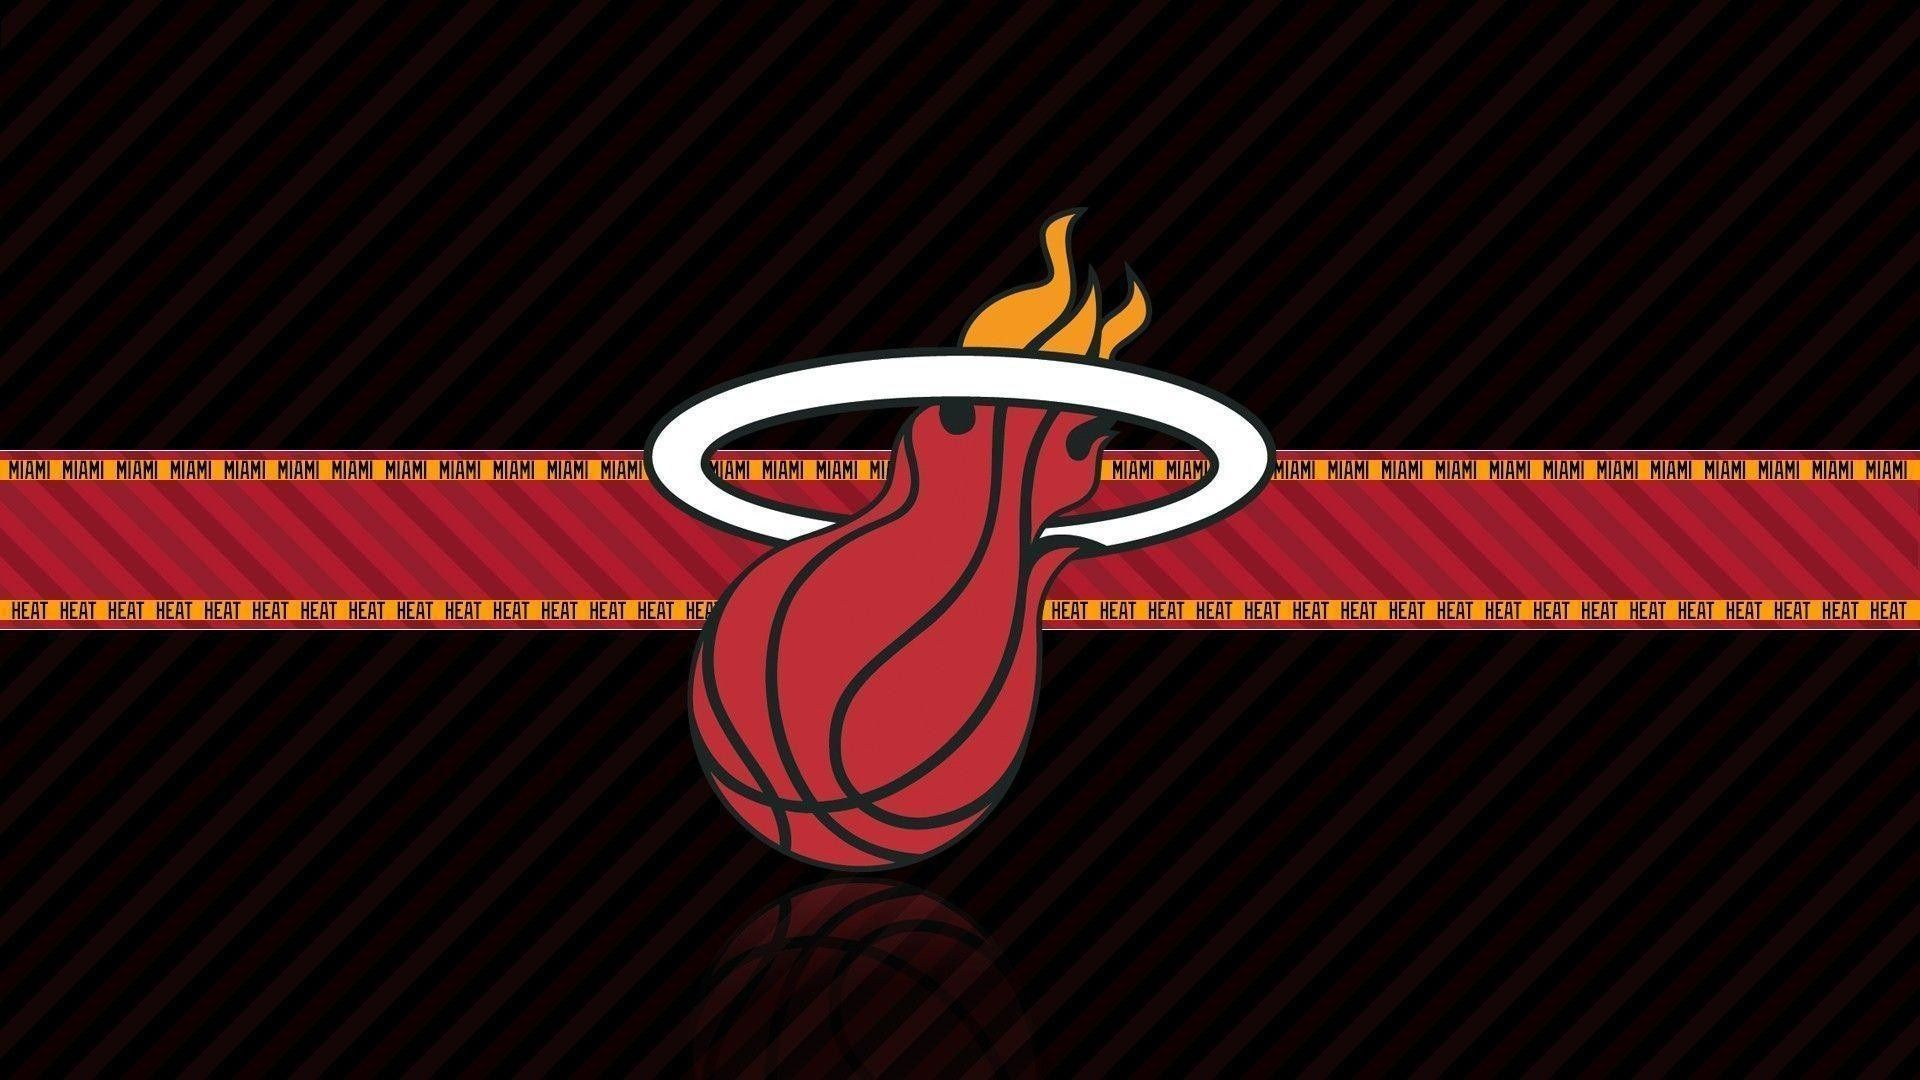 Basketball Wallpaper Best Basketball Wallpapers 2020 Miami Heat Logo Basketball Wallpaper Miami Heat